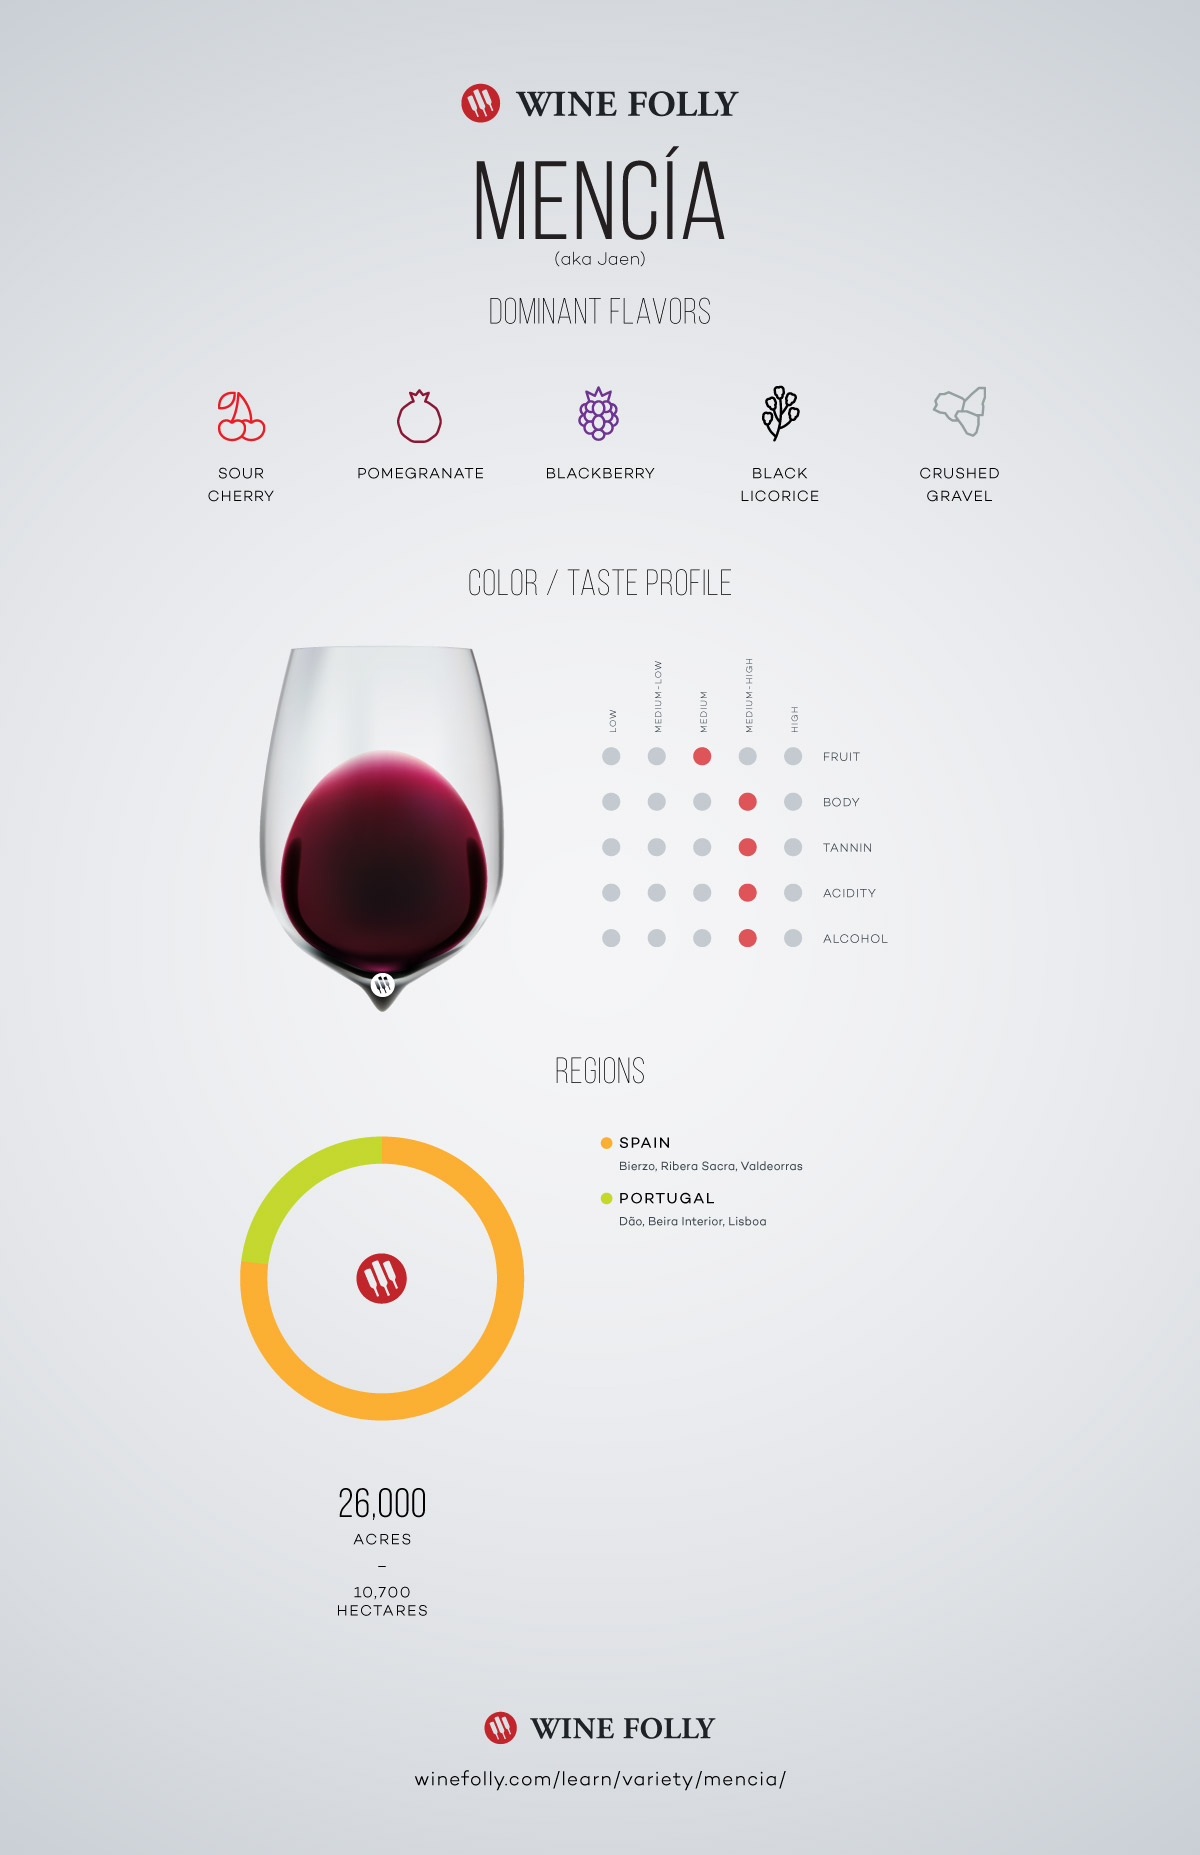 Mencia - Jaen Wine Profile and information by Wine Folly